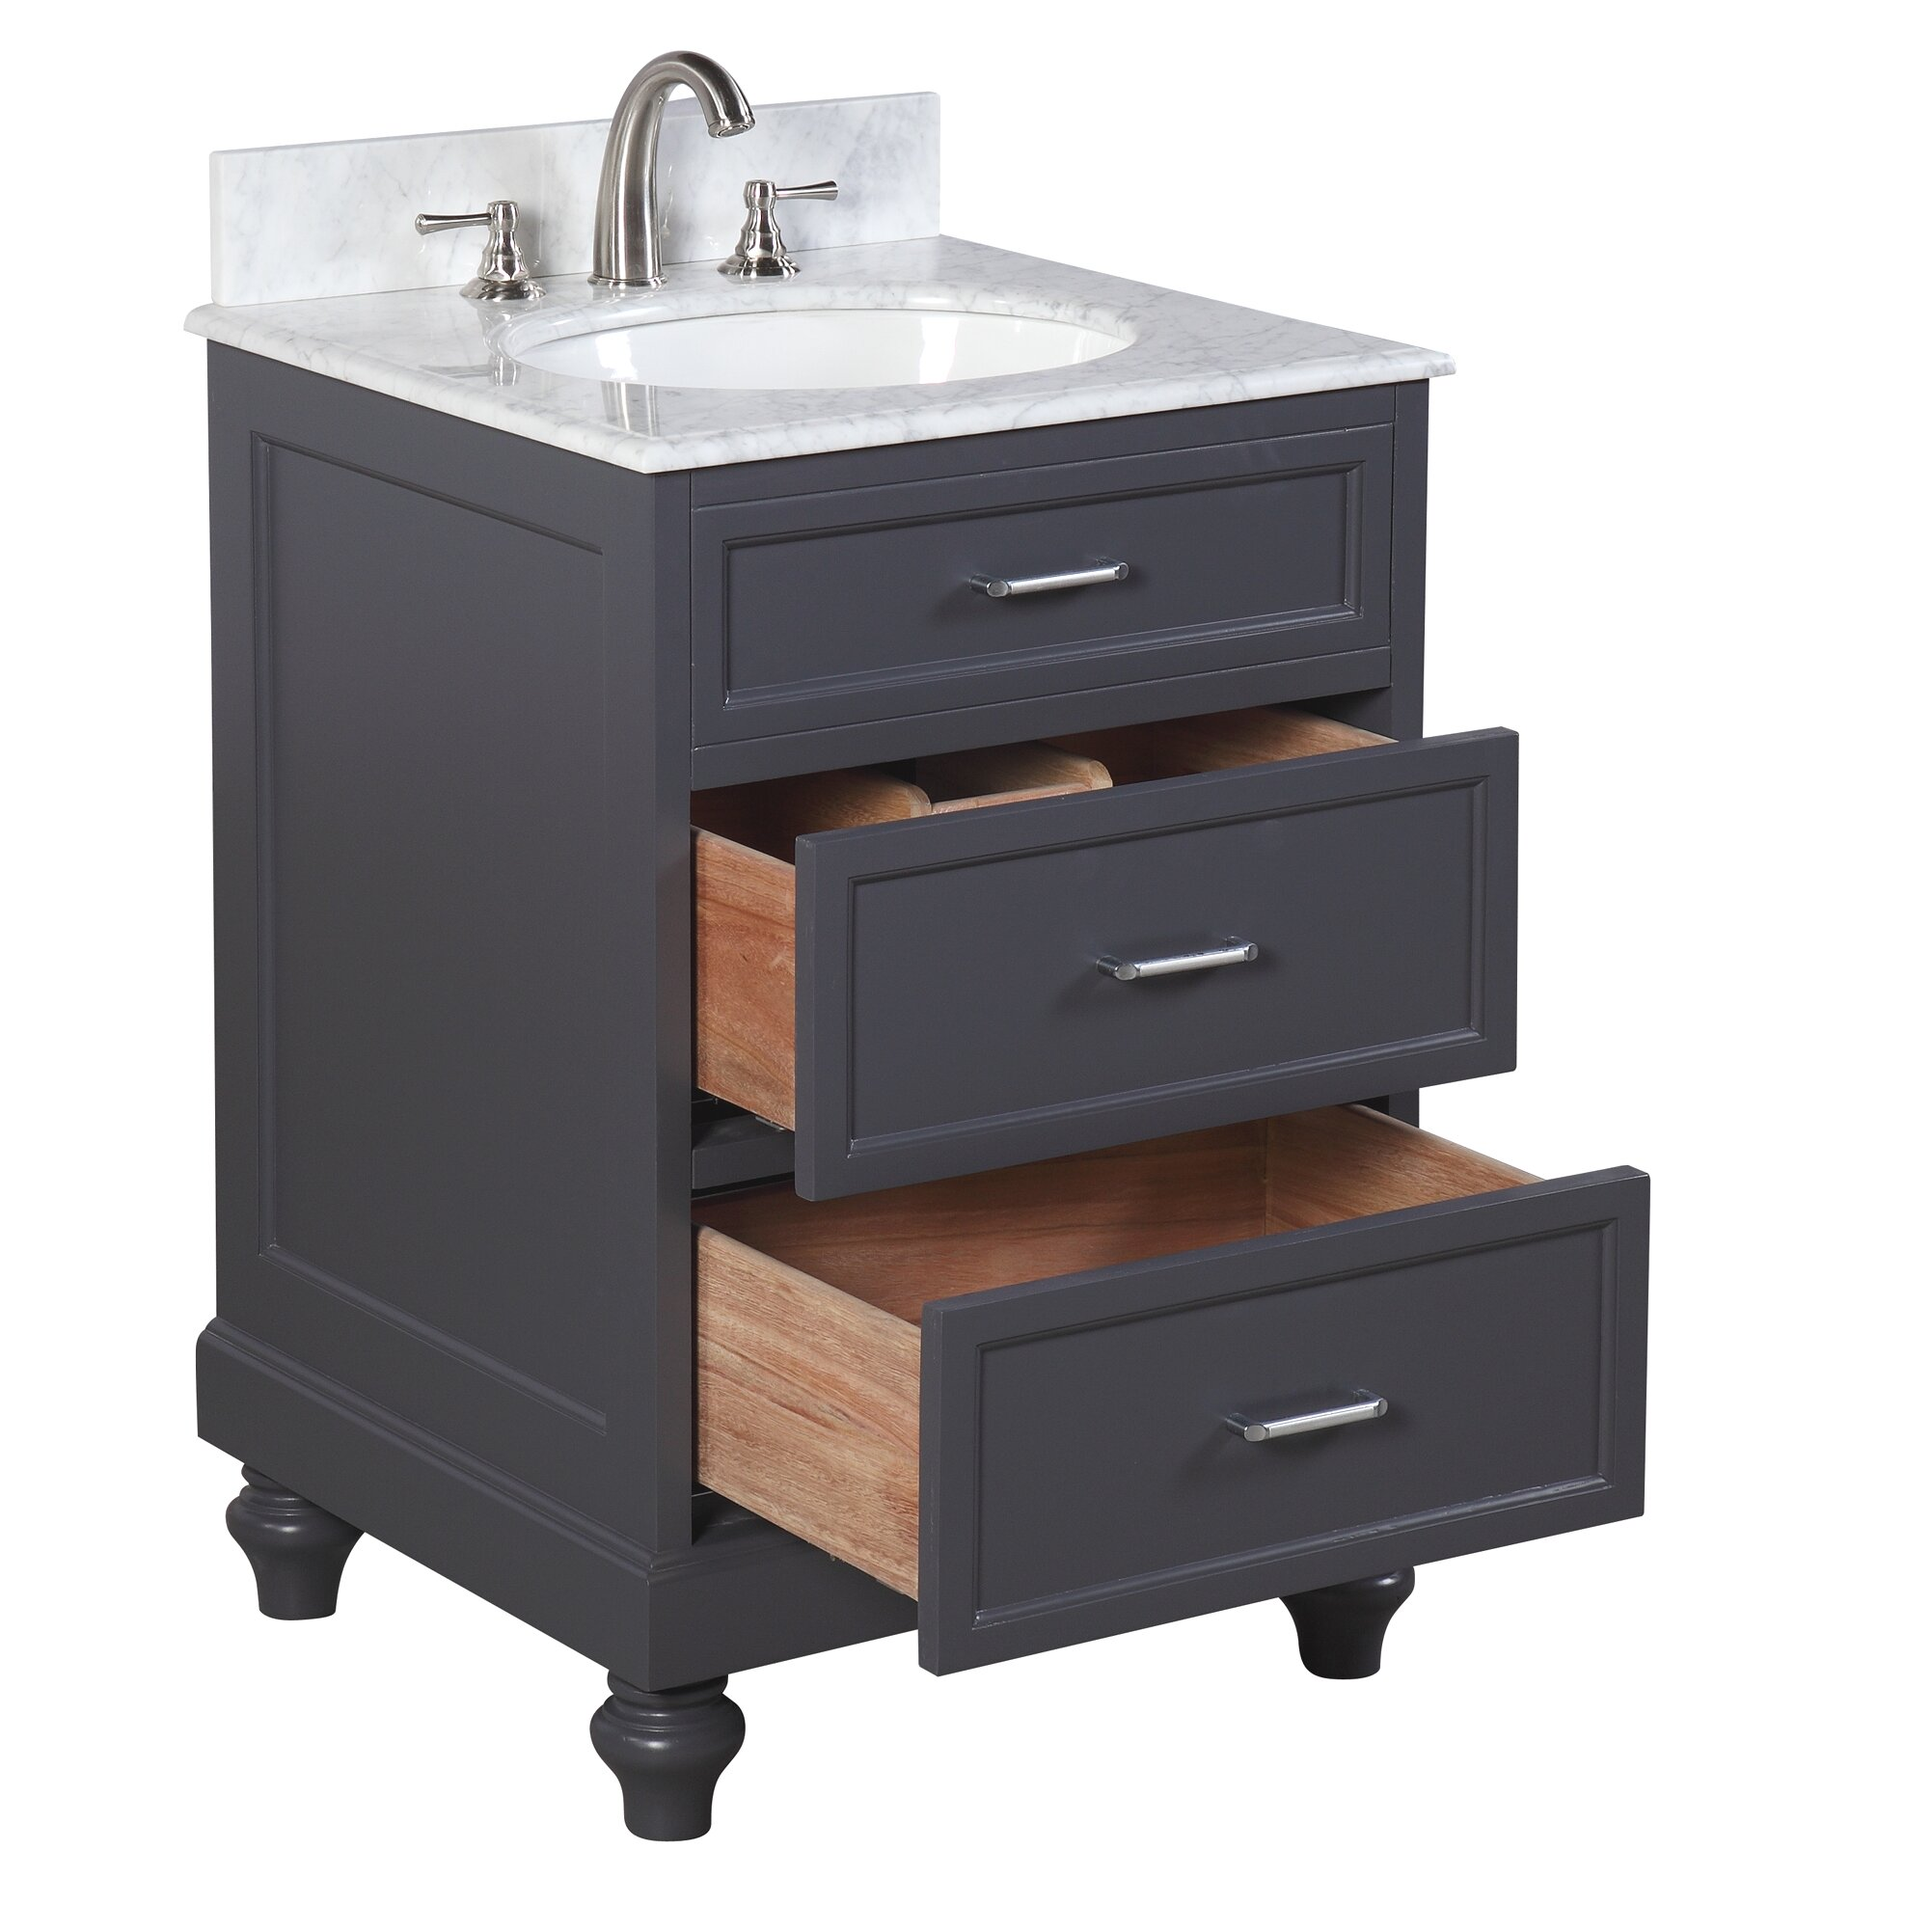 Kbc amelia 24 single bathroom vanity set reviews wayfair for Bath and vanity set